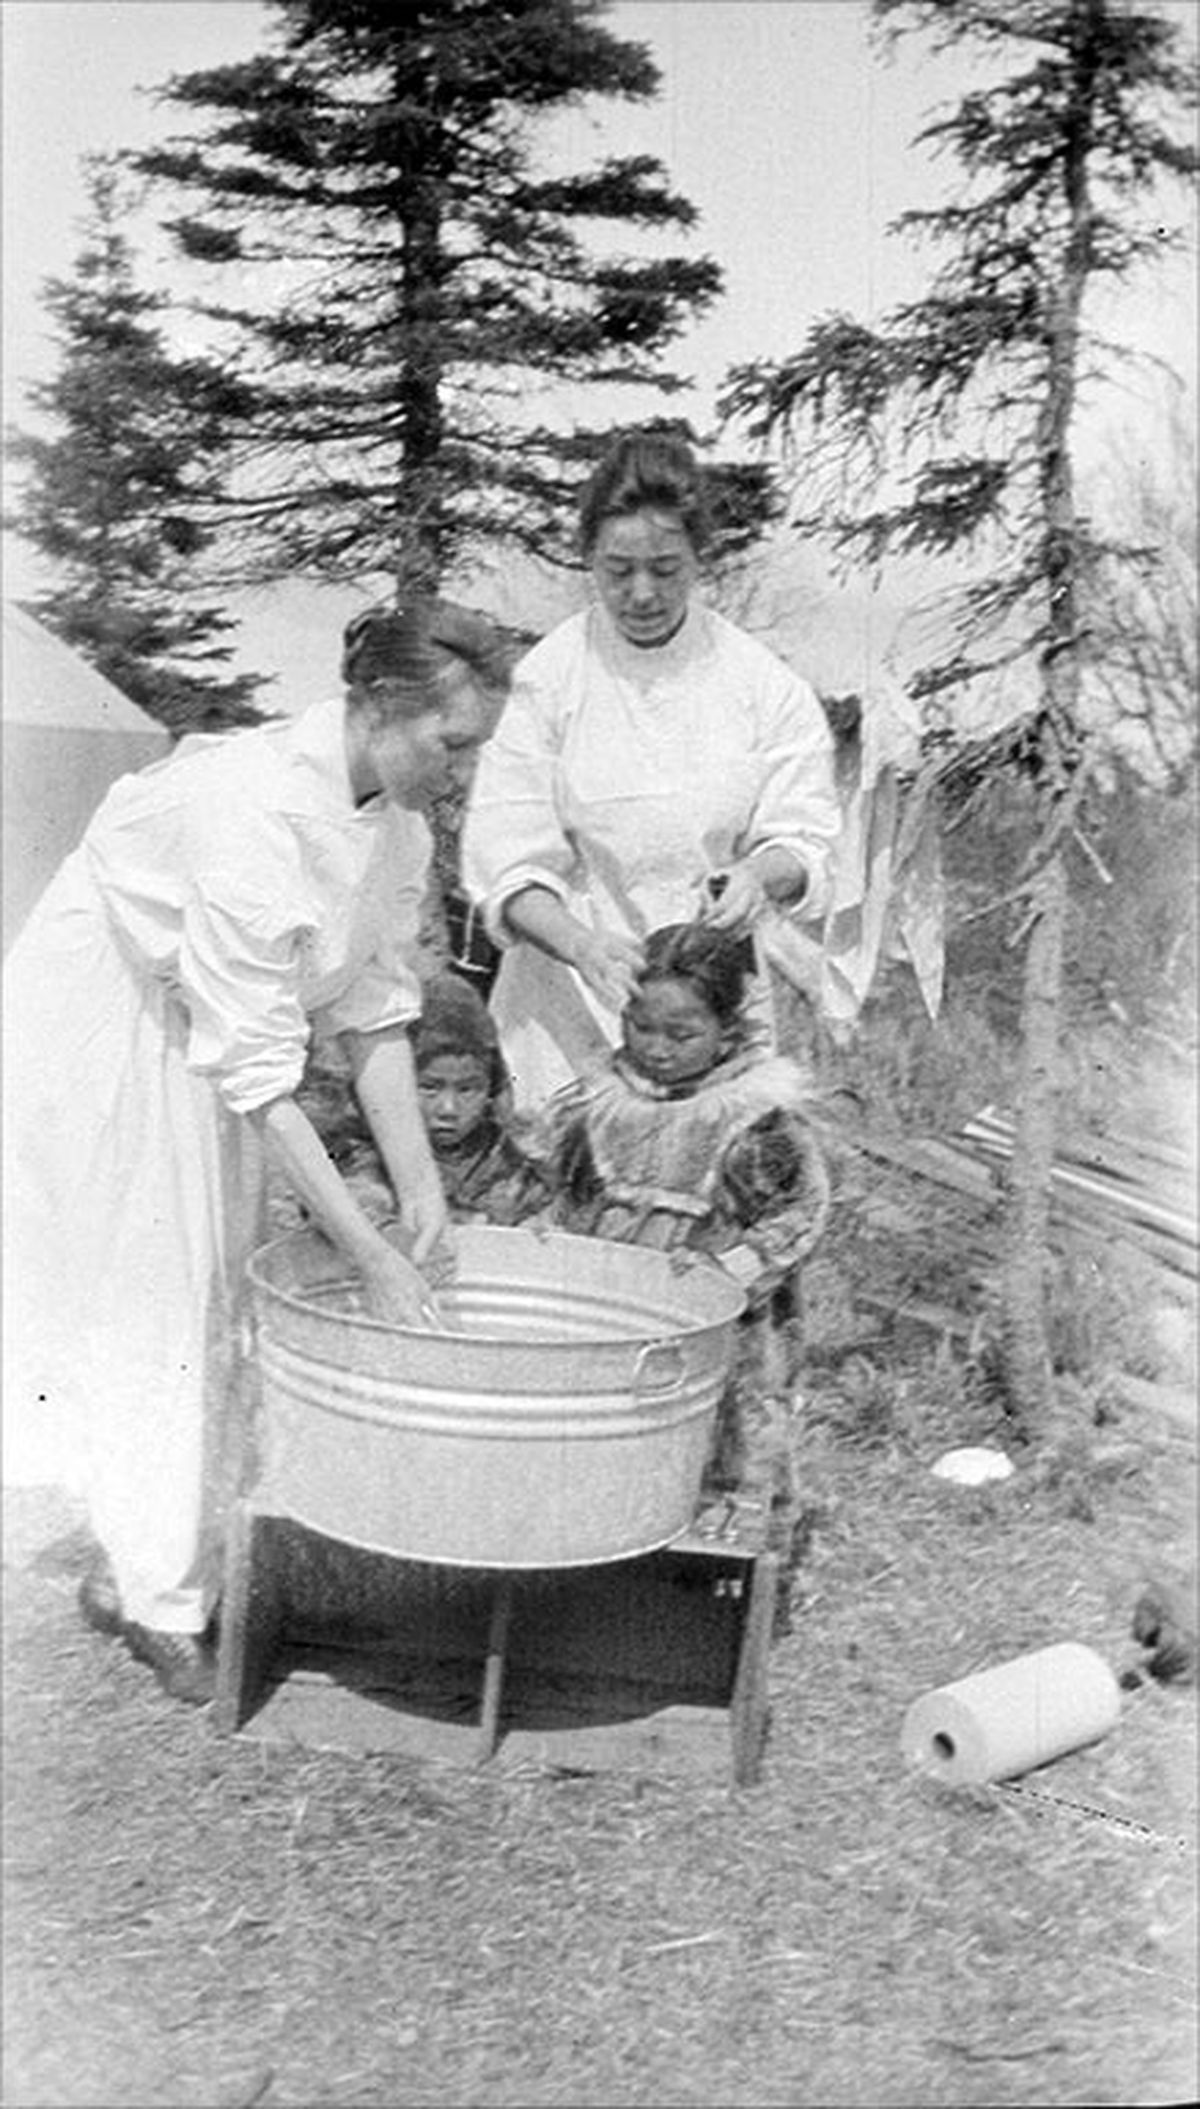 Nurses Mayme Conley and Rhoda Ray help children clean up during the 1919 Spanish Flu pandemic in Bristol Bay. (Dr. Linus H. French photo courtesy Bristol Bay Heritage Land Trust)